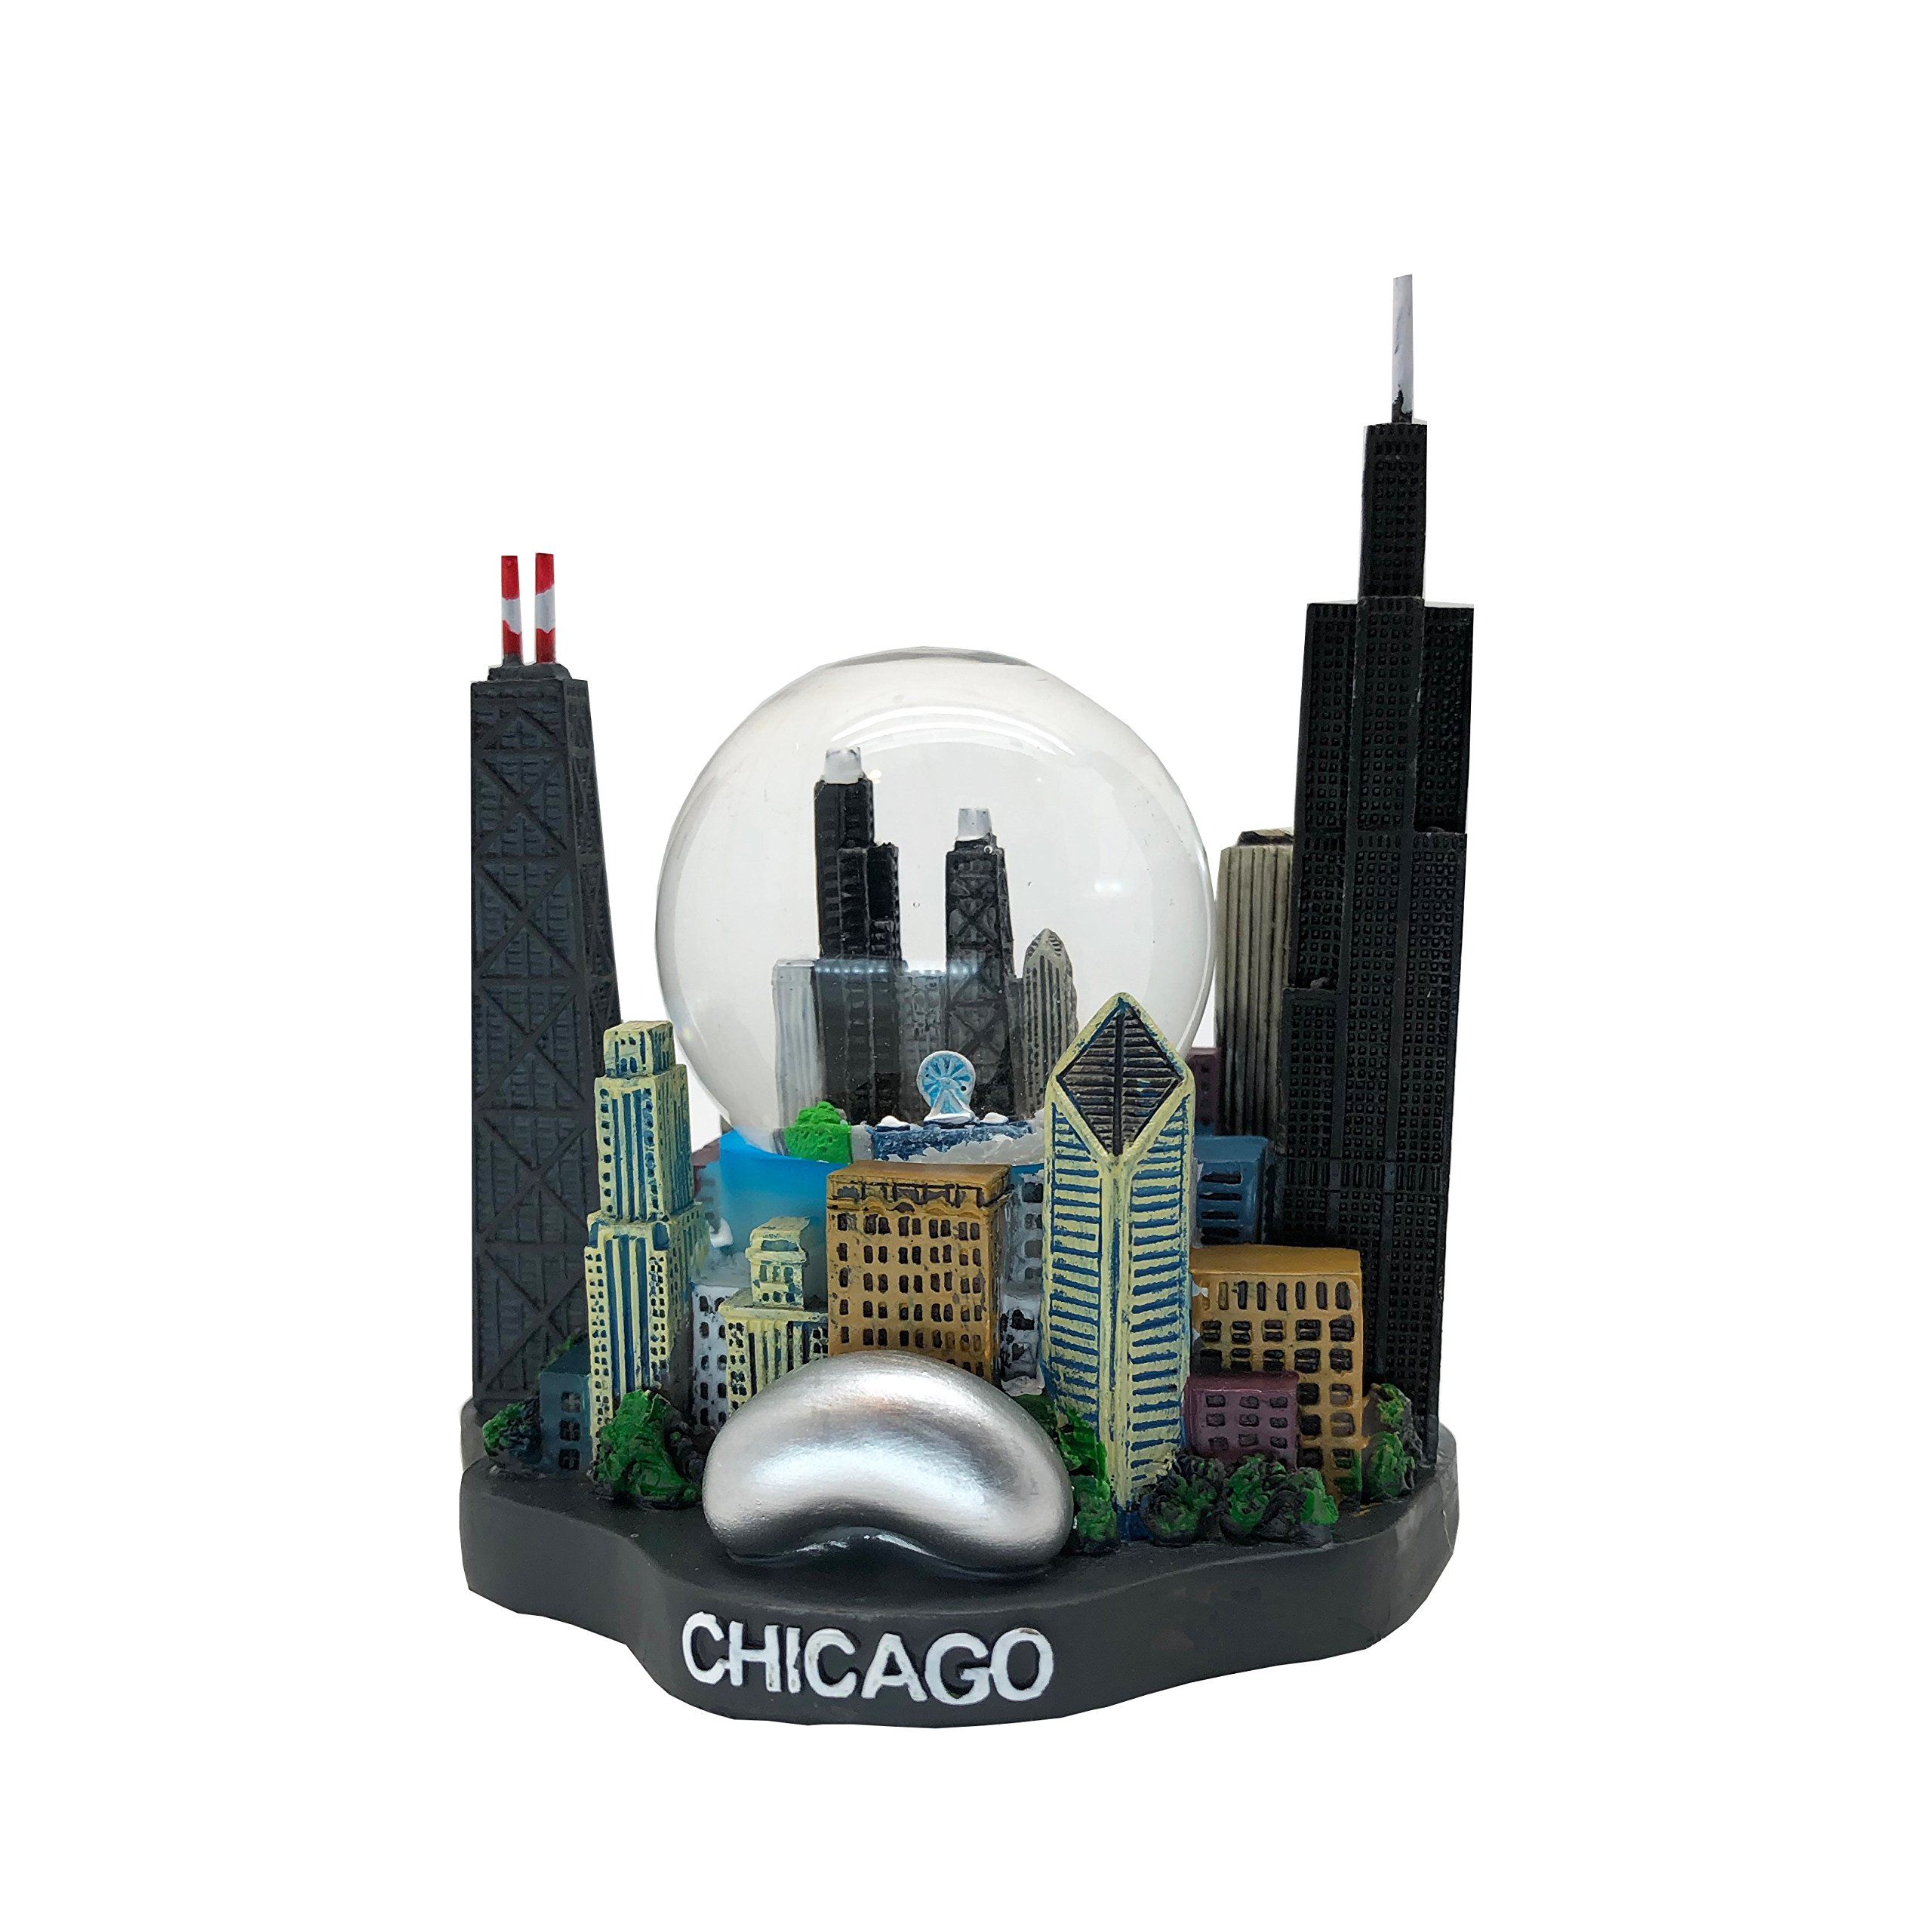 Great Chicago Gifts Chicago Color Snow Globe Statue - 45mm by Great Chicago Gifts